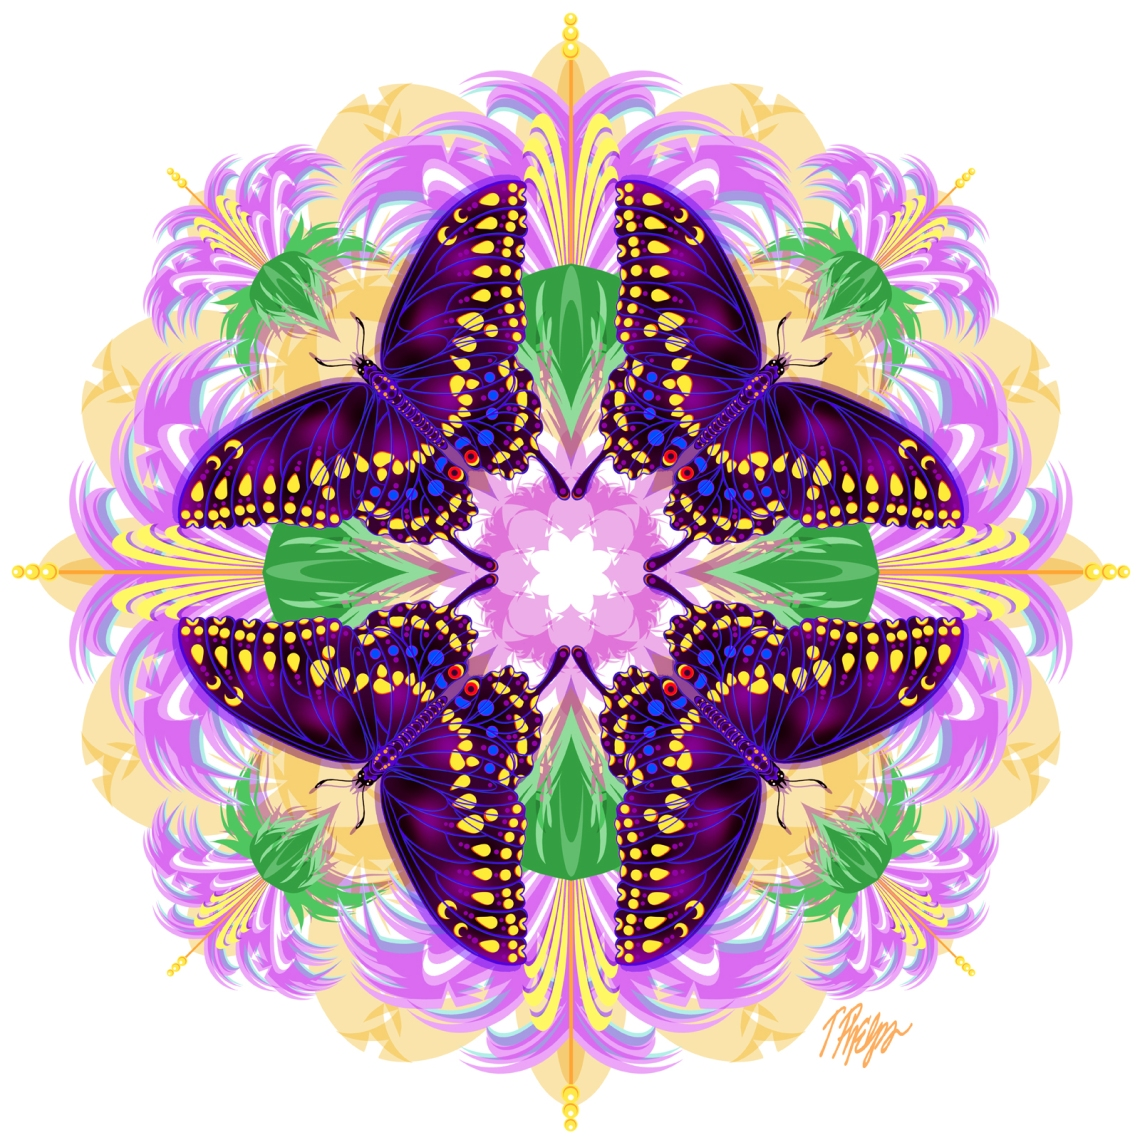 Nature Mandala Graphic Designs by Medical Illustrator and Professor, Timothy Phelps on Jung Katz Art Blog